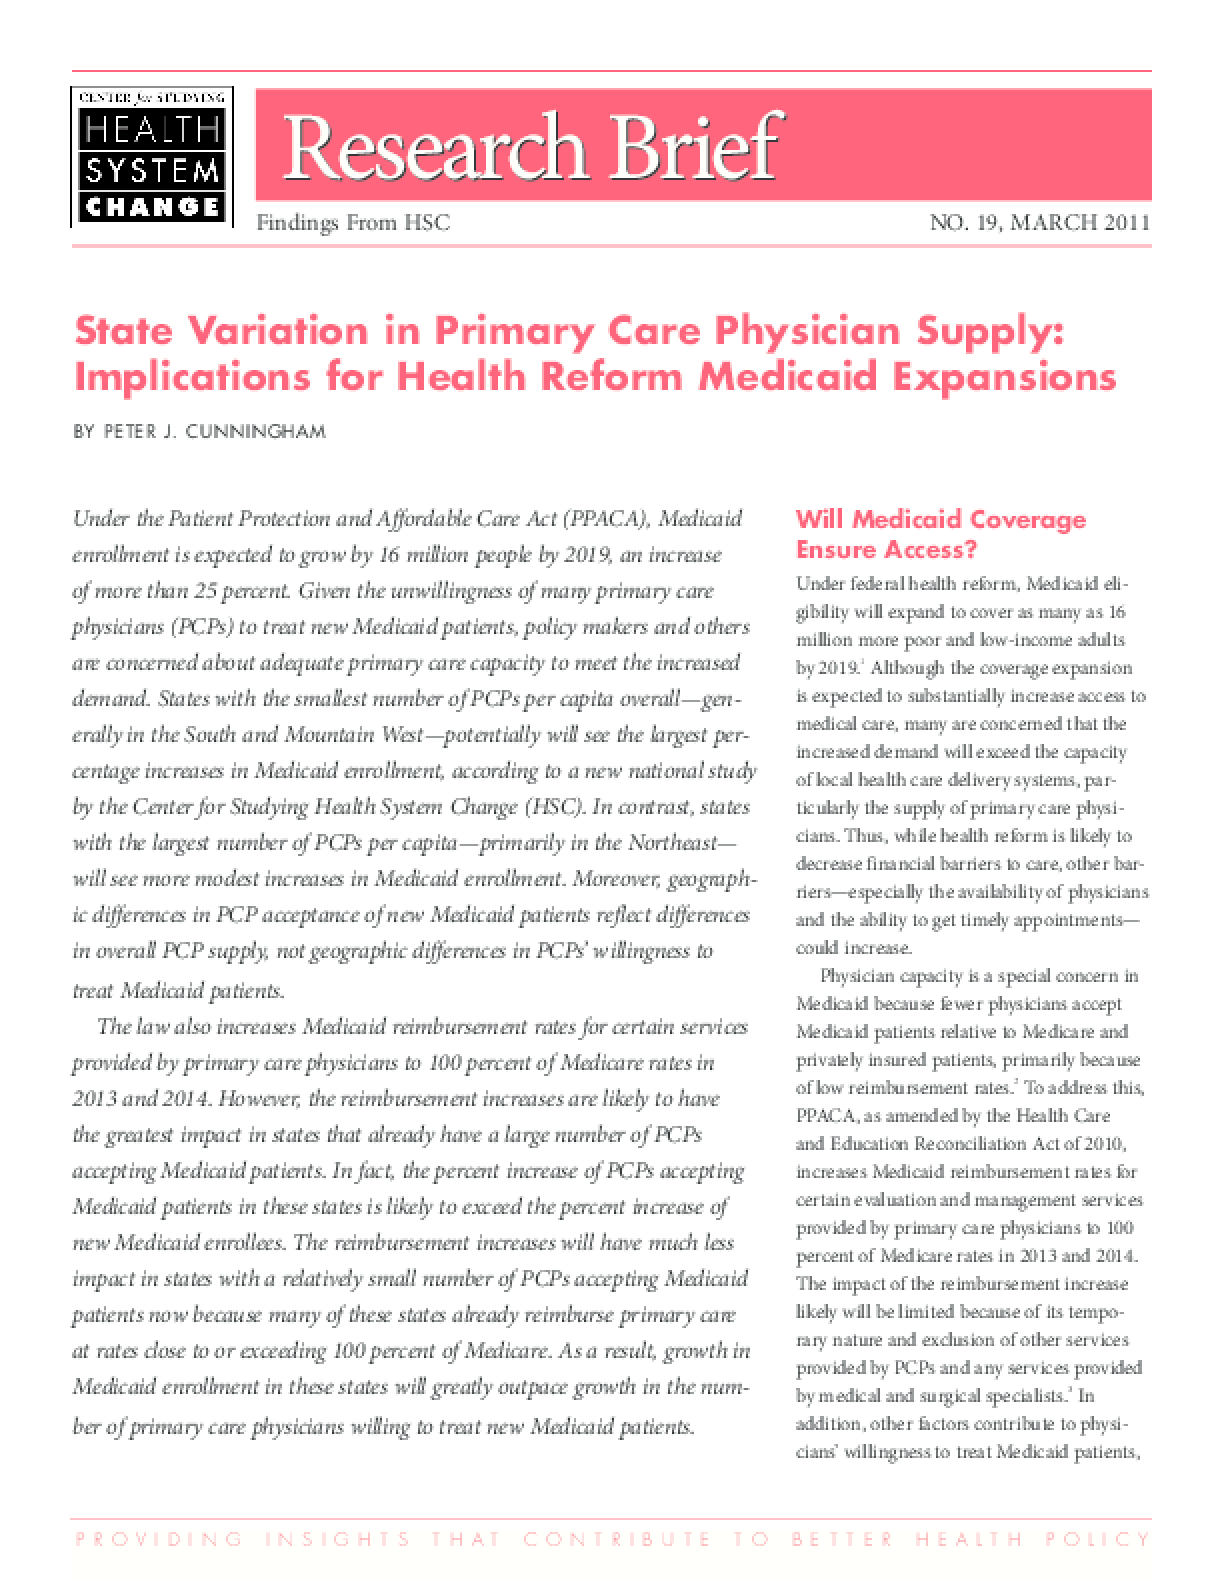 State Variation in Primary Care Physician Supply: Implications for Health Reform Medicaid Expansions